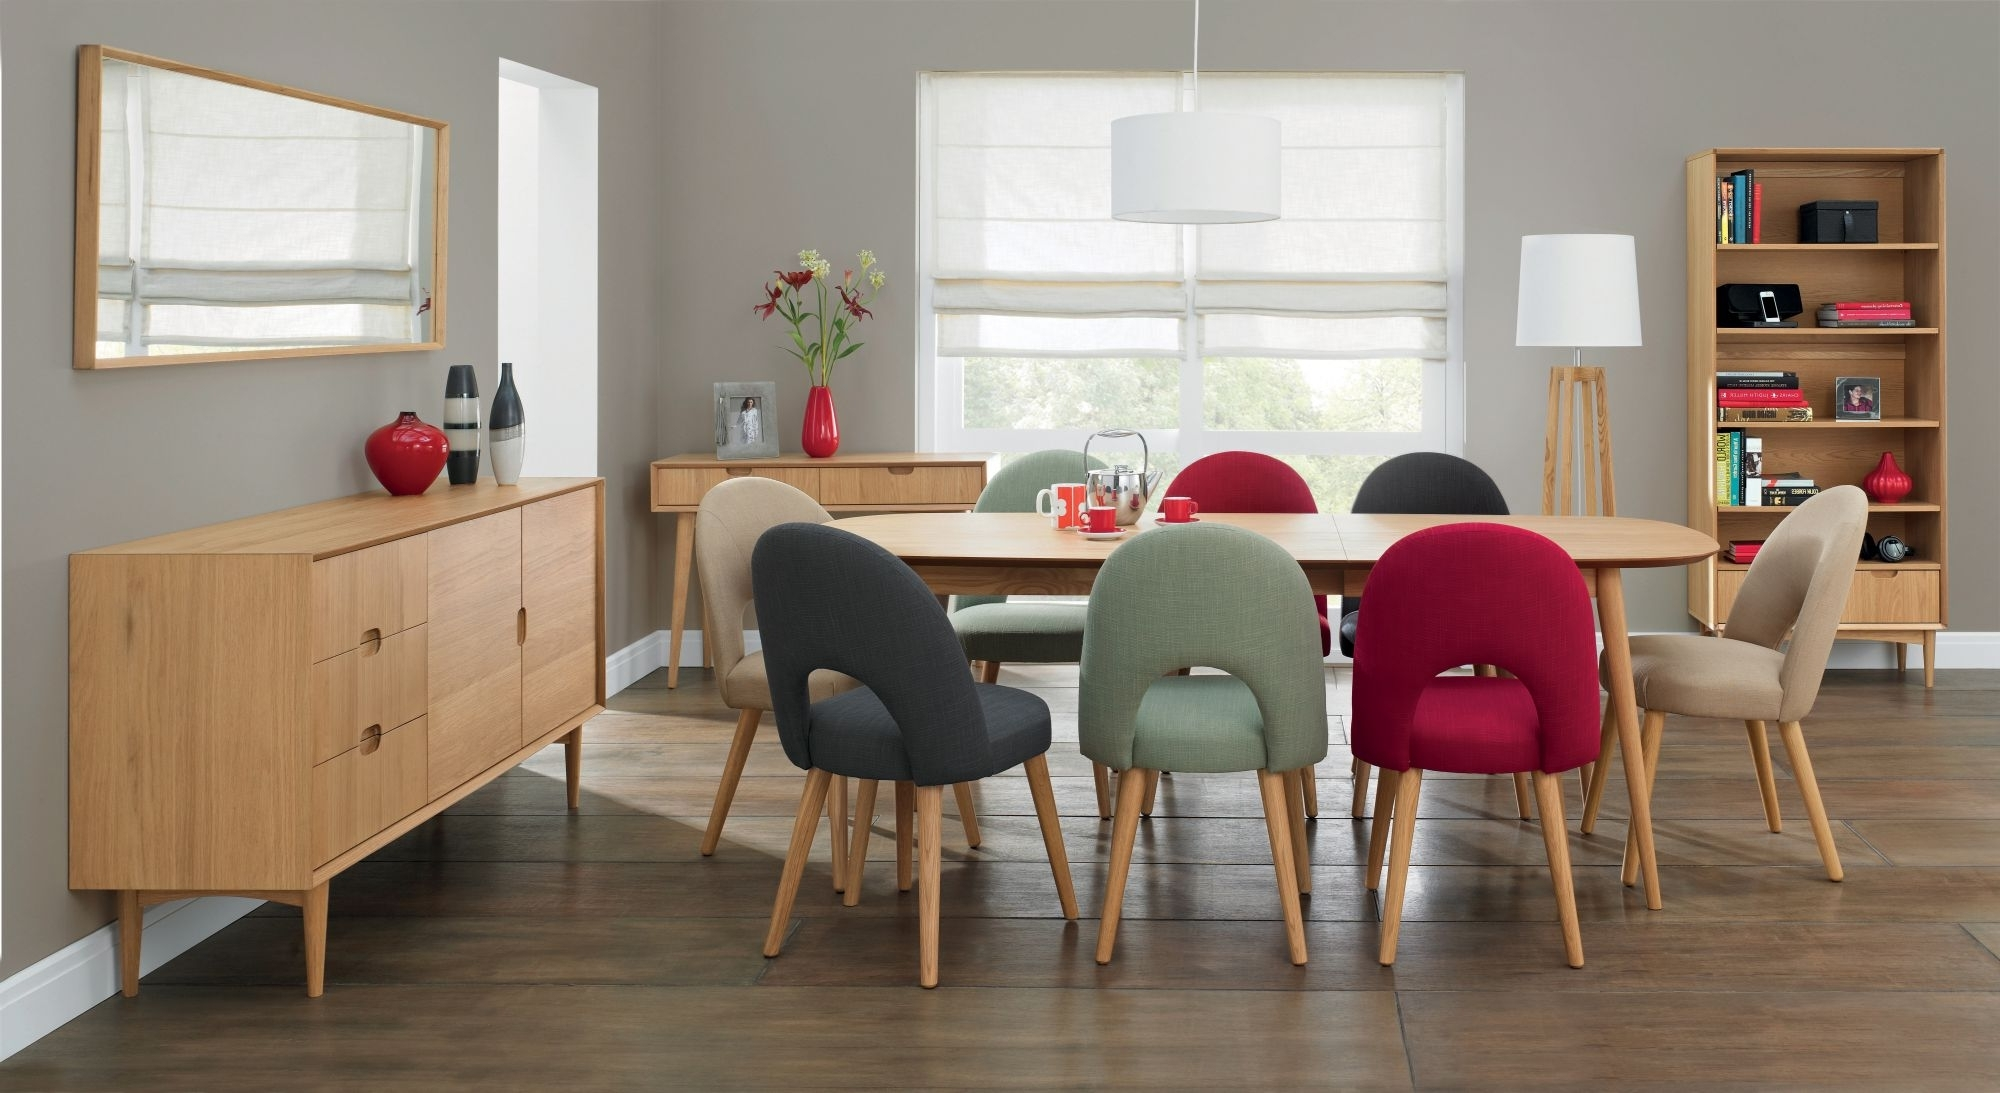 Bentley Designs Oslo Oak 6 Seater Dining Table & 6 Stone Fabric Intended For Trendy Oak 6 Seater Dining Tables (View 17 of 25)